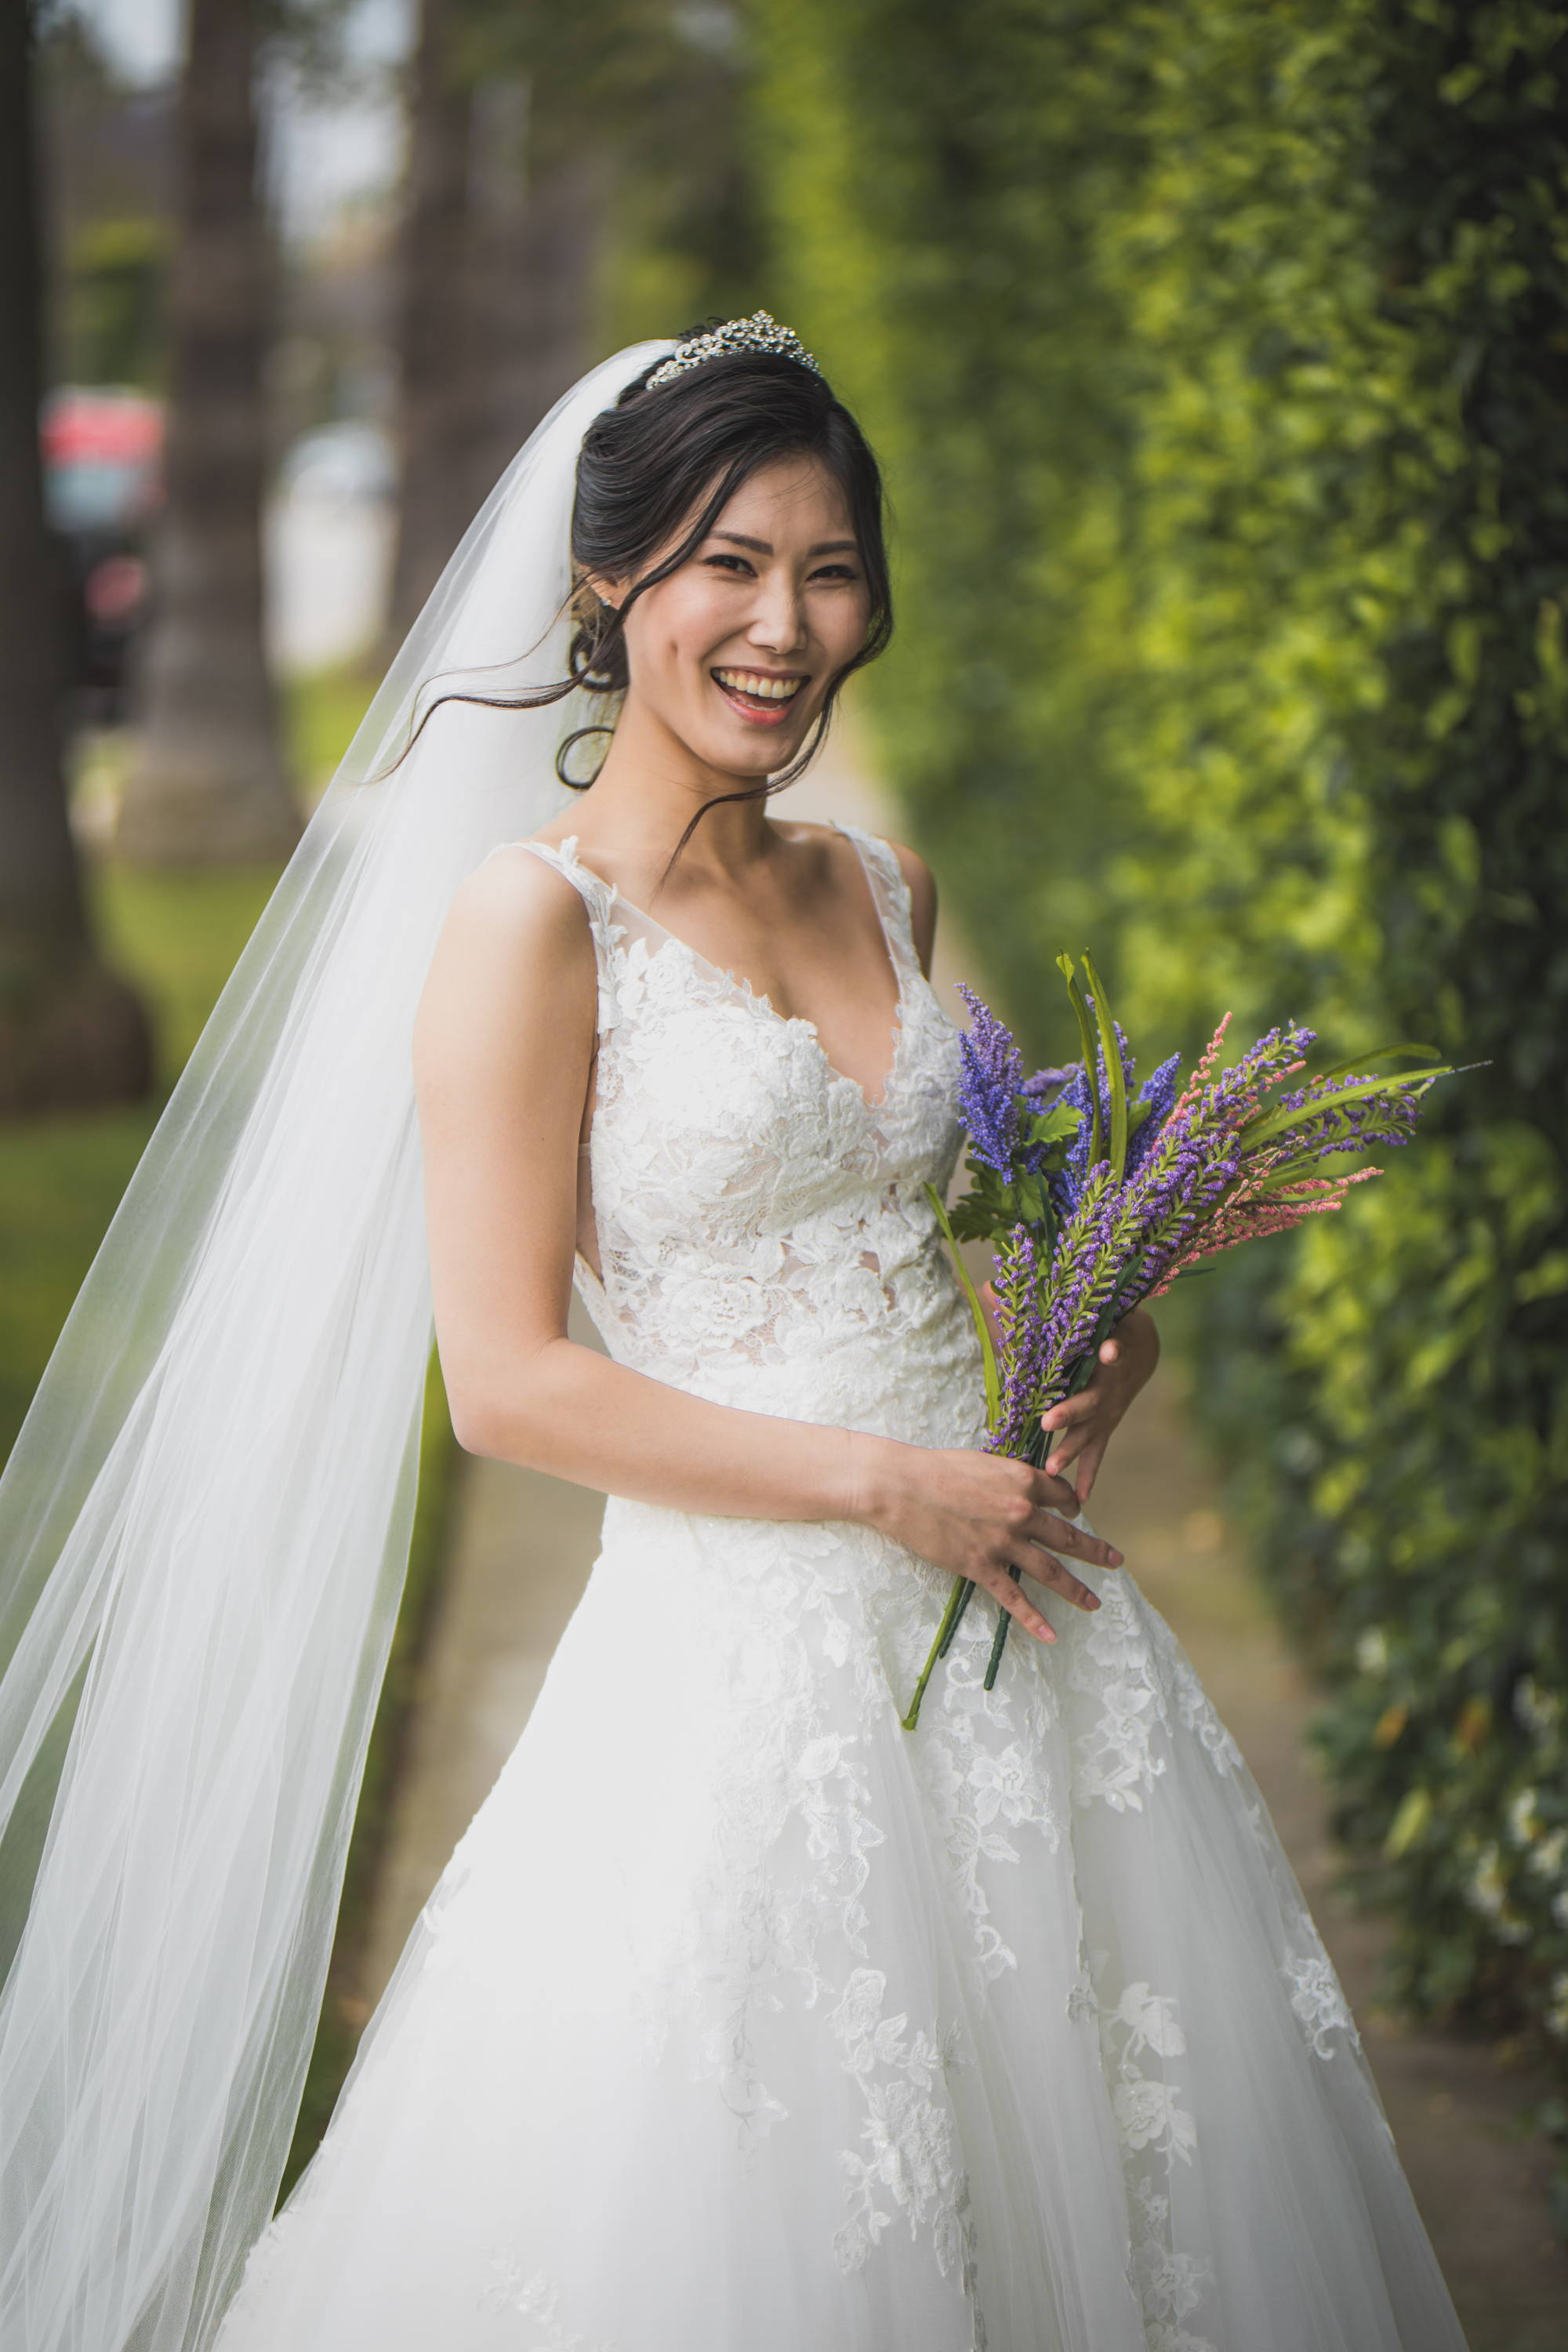 WEDDING DRESS PHOTO PACKAGE